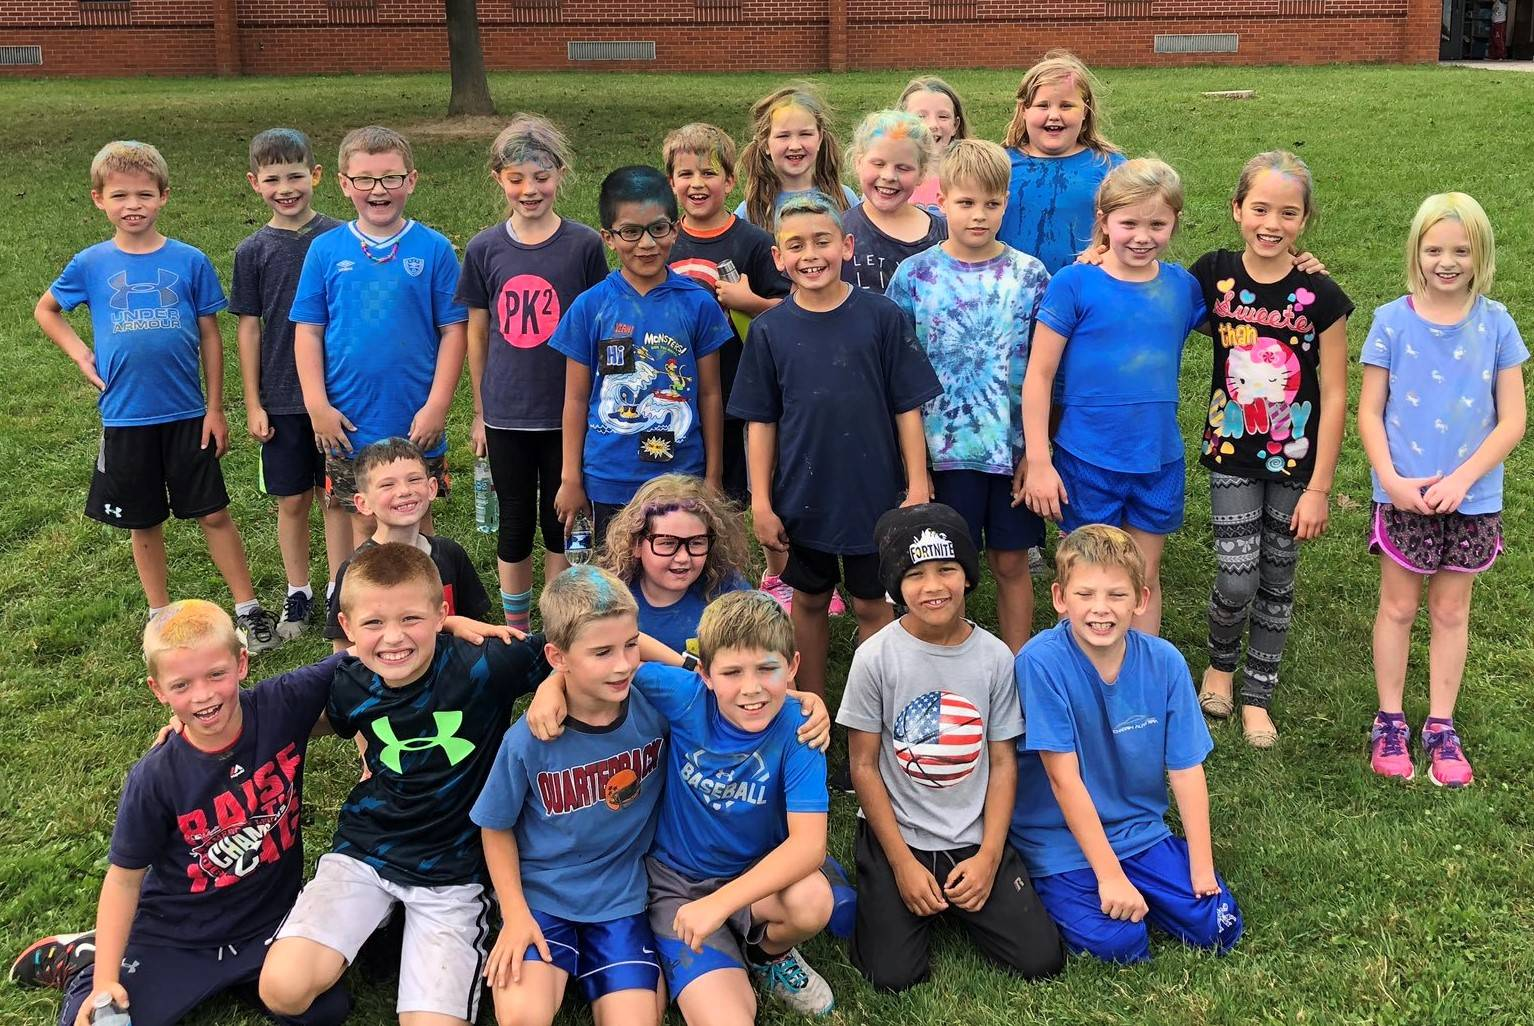 Munson Elementary Fun Run - Fall 2019